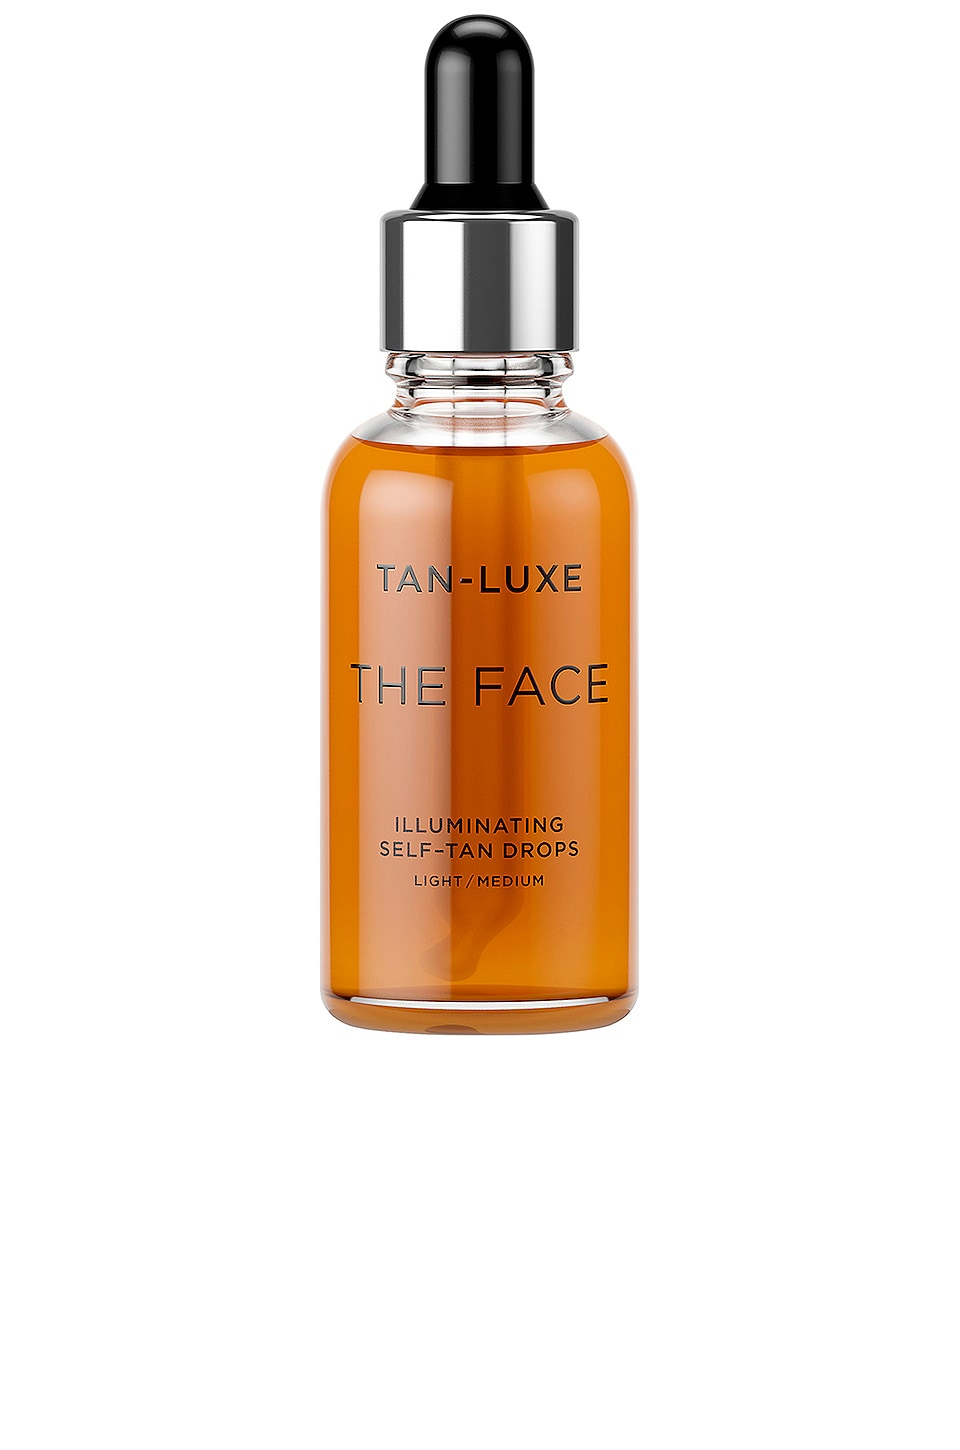 Tan Luxe AUTOBRONZANT VISAGE THE FACE